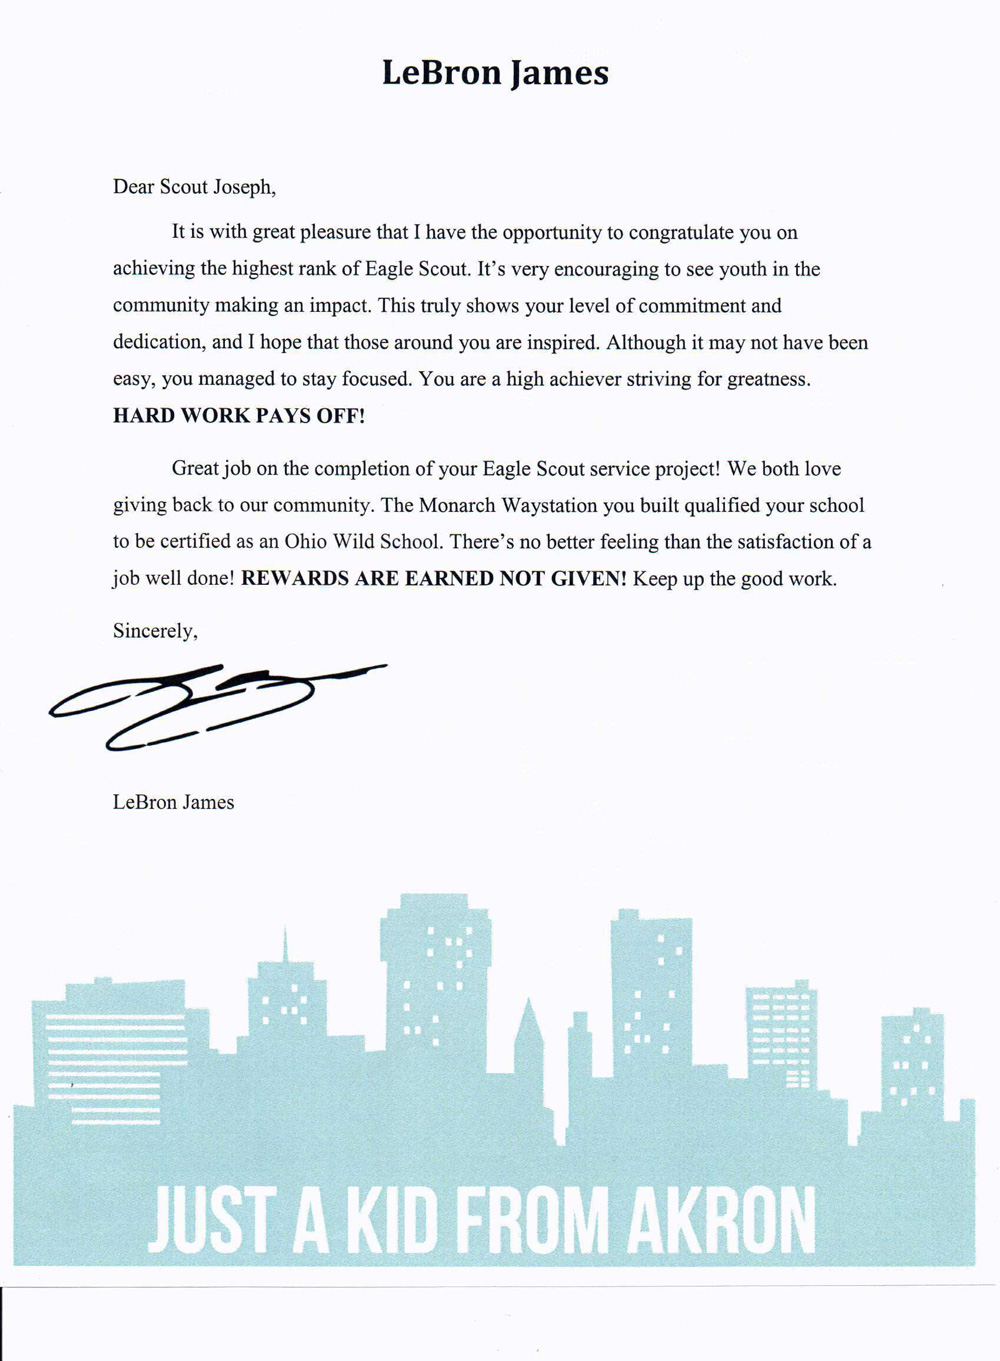 Lebron james sent this letter to a new eagle scout lebron james letter to eagle scout thecheapjerseys Gallery